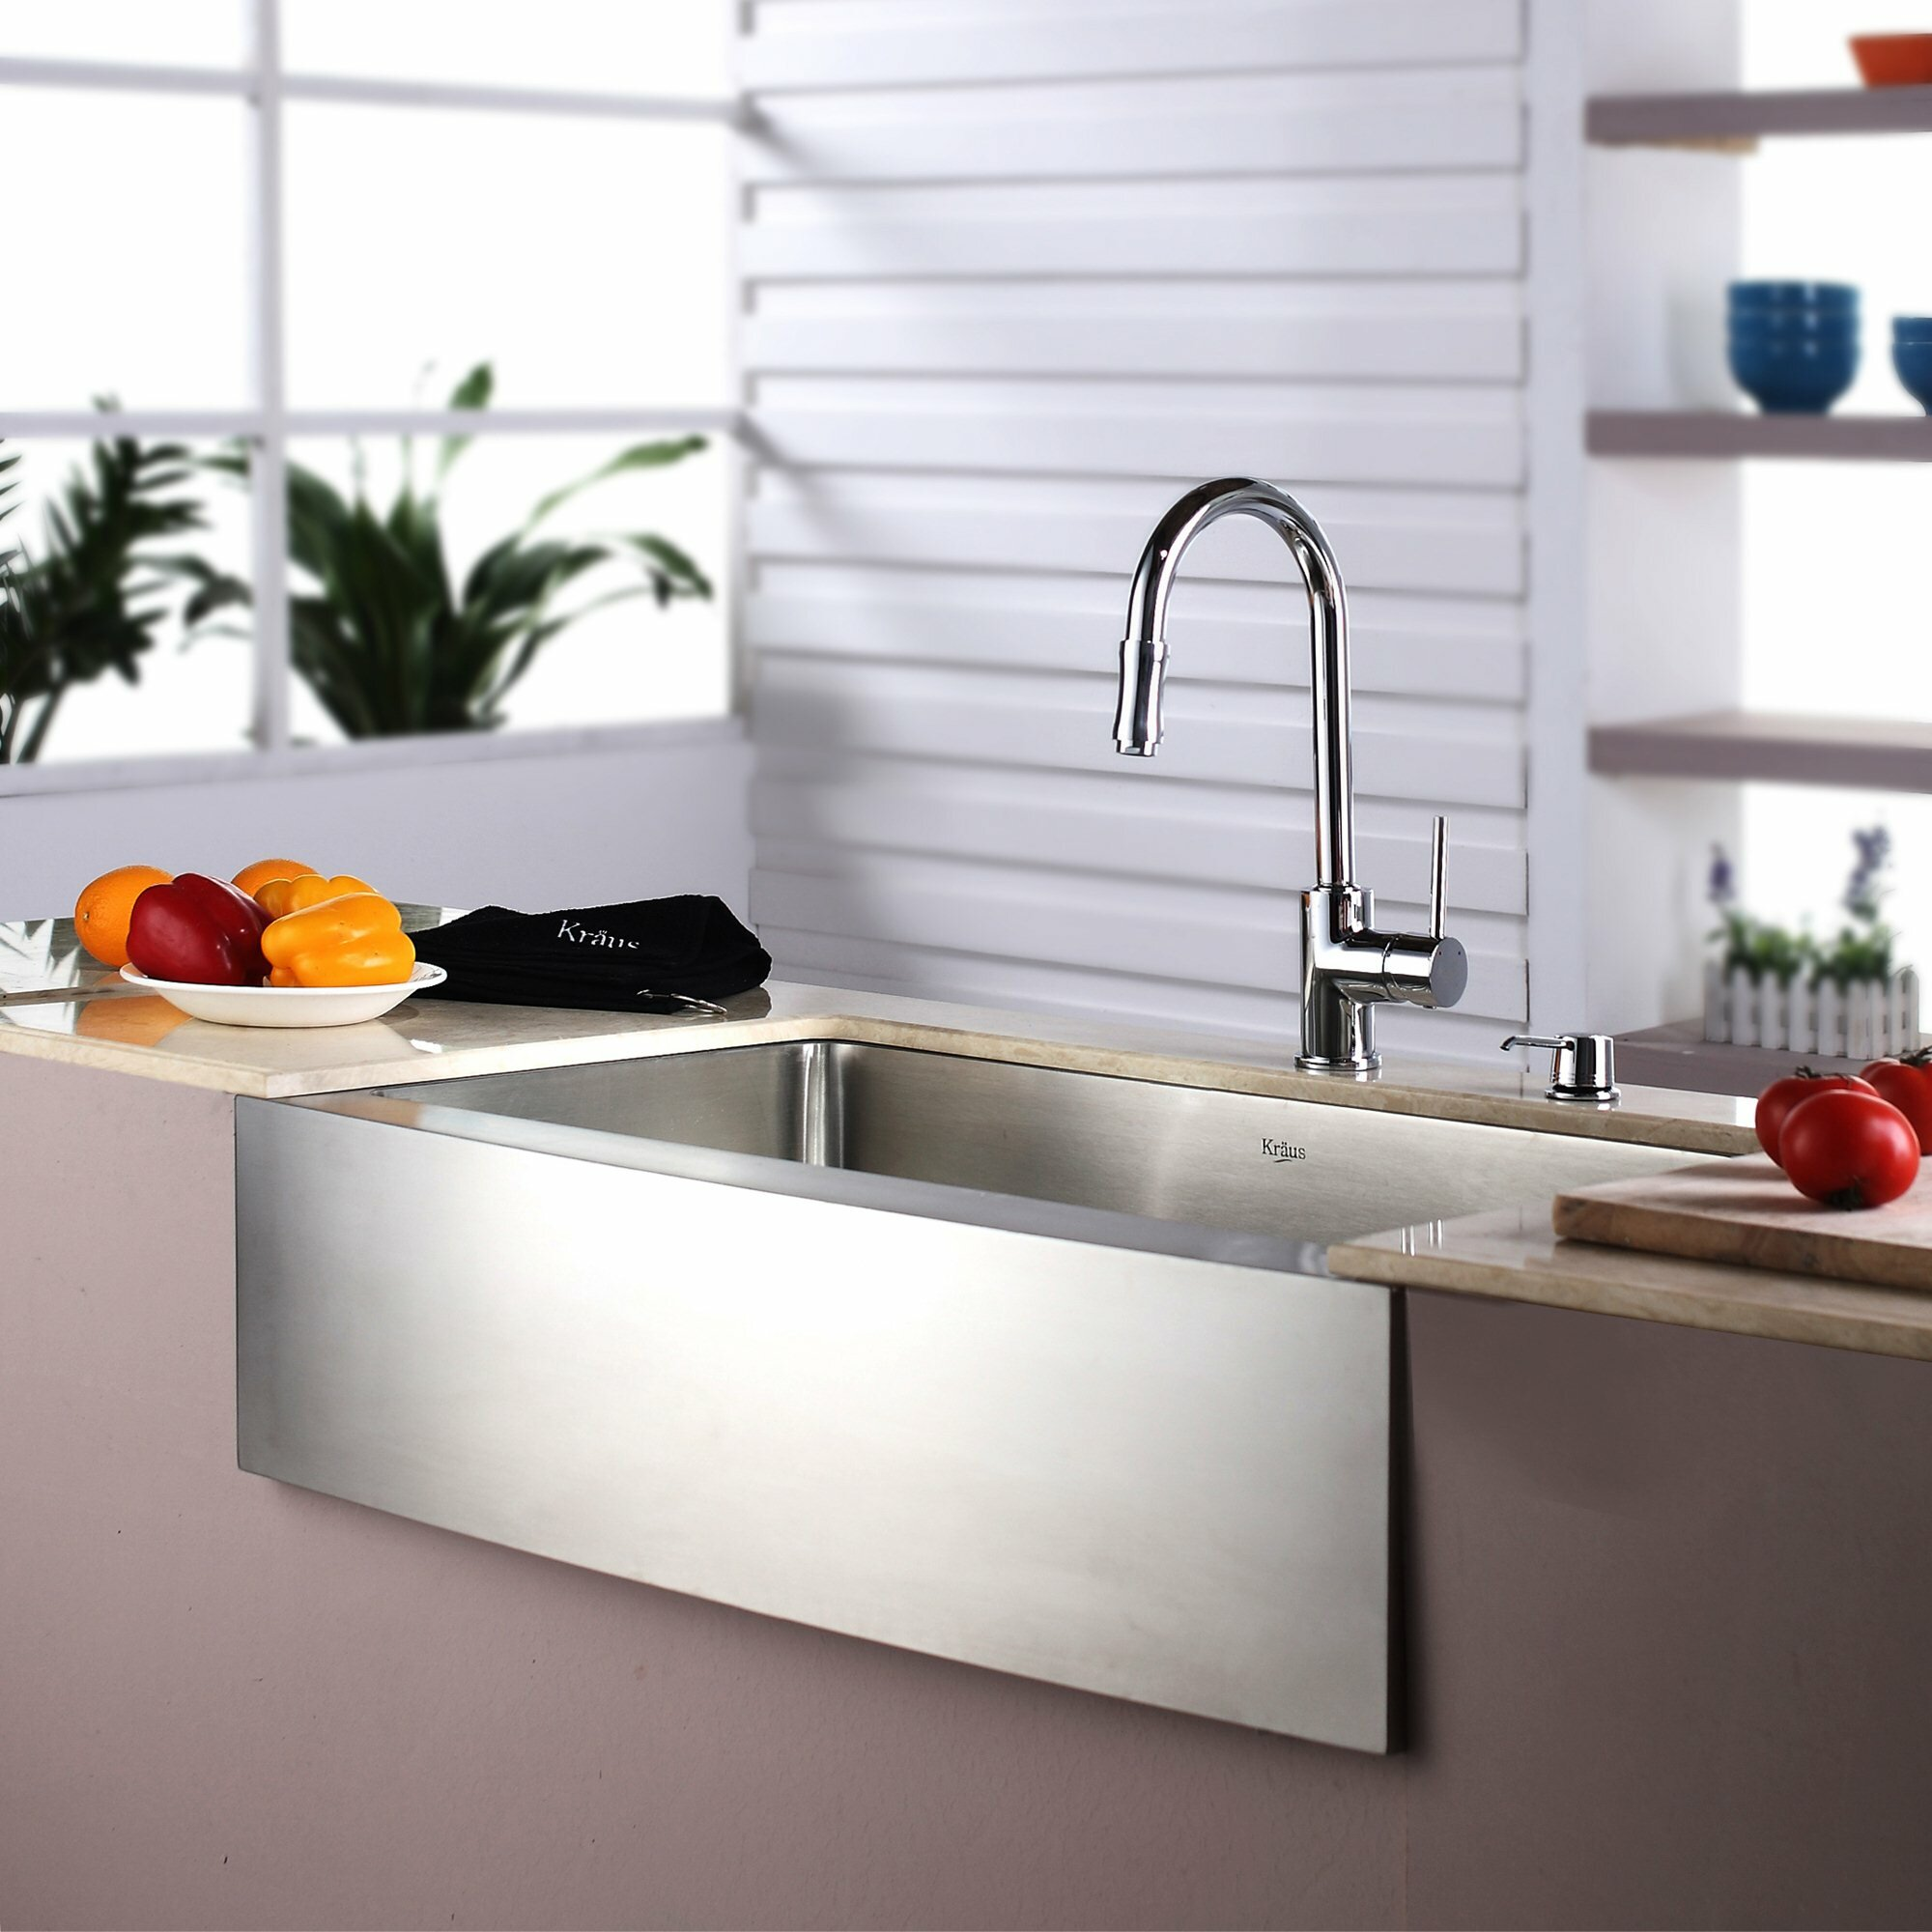 Kraus Farmhouse Kitchen Sink With Faucet And Soap